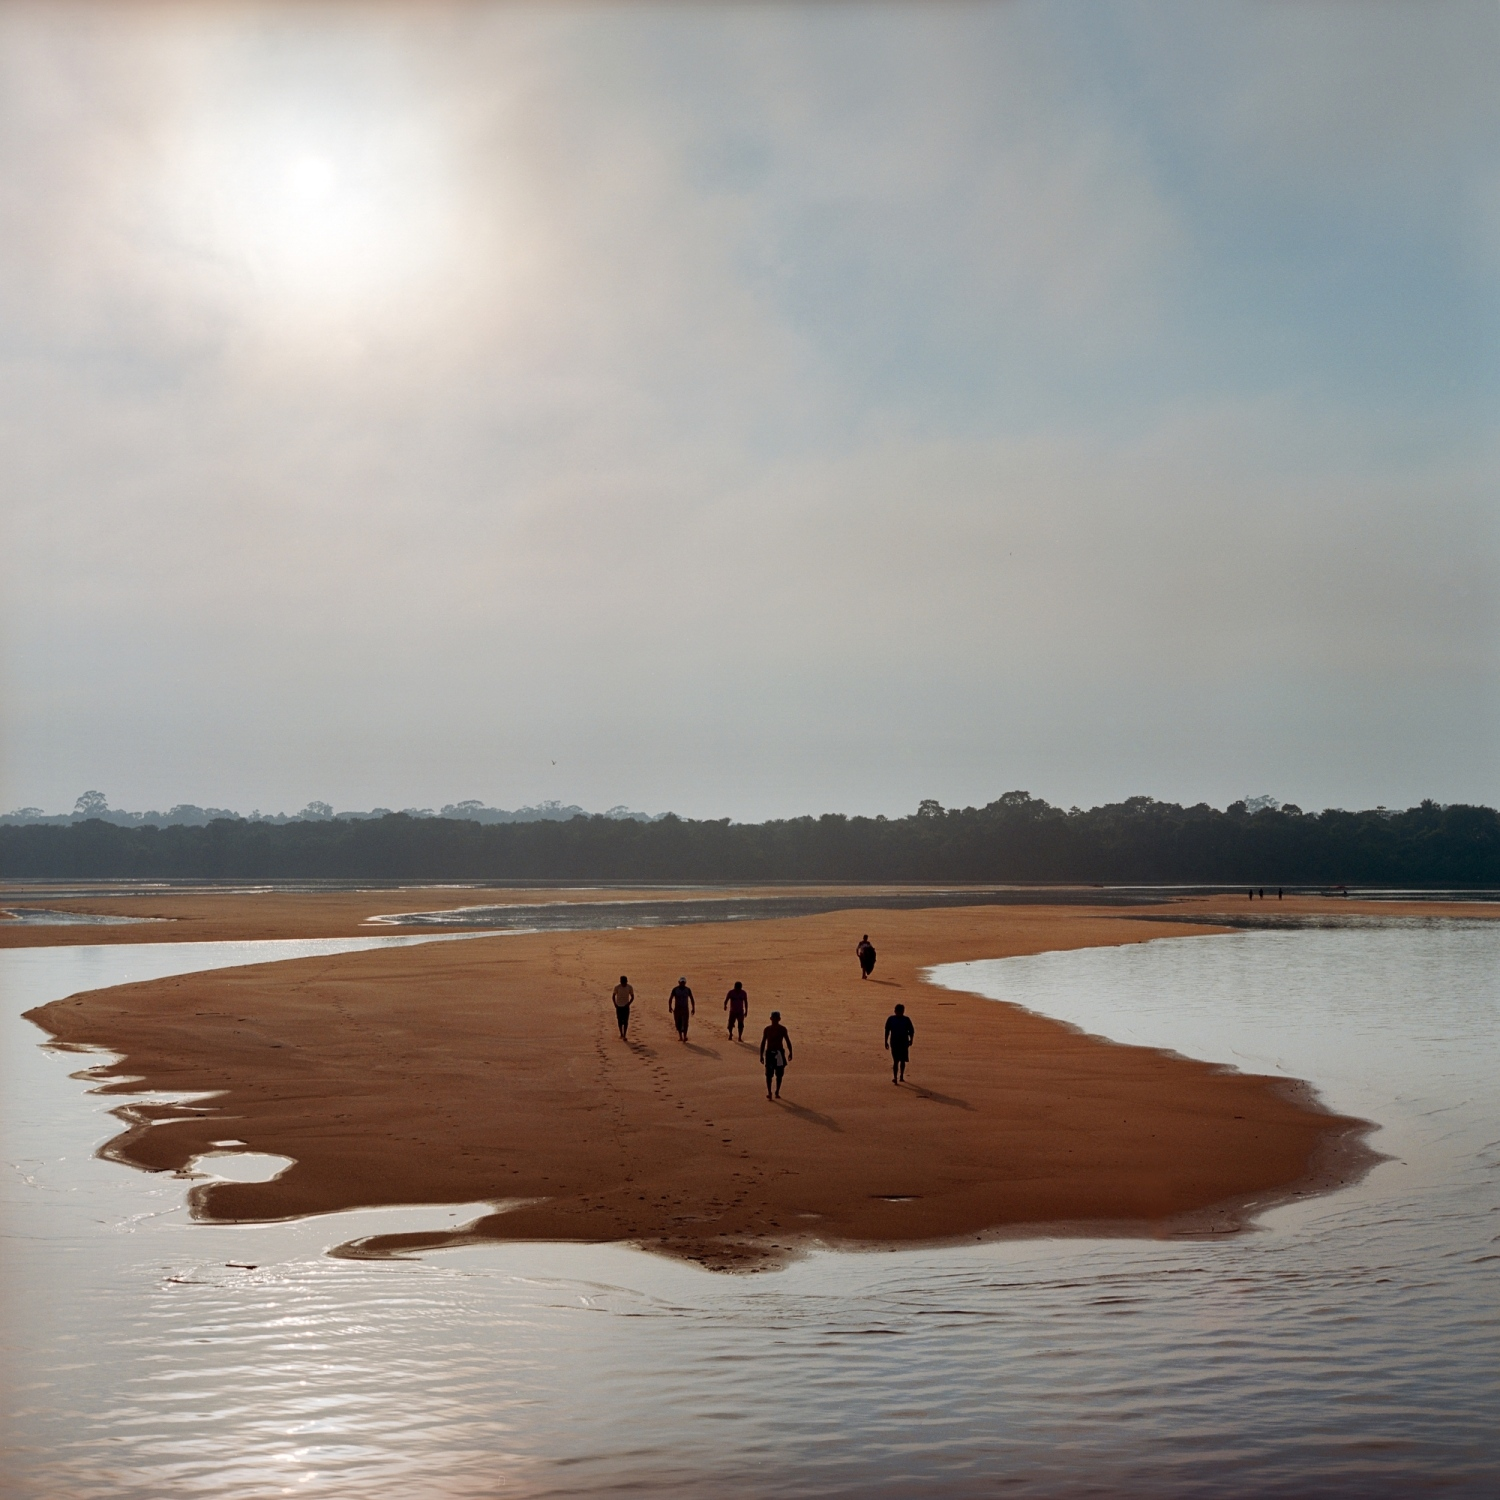 November 26, 2014. Members of the Munduruku indigenous tribe walk on a sandbar on the Tapajos River as they prepare for a protest against plans to construct a series of hydroelectric dams on their river in in Para State, Brazil. The tribe members used the rocks to write 'Tapajos Livre' (Free Tapajos) in a large message in the sand in an action in coordination with Greenpeace. After years of fighting, the Munduruku were successful in lobbying the government to offically recognize their traiditonal territory with a demarcation. This recognition forced IBAMA, Brazil's Environmental Agency, to suspend the environmental licensing process for the 12,000 megawatt Tapajós hydroelectric complex, due to the unconstitutional flooding of their now recognized land. But the fight continues as 40 more dams are still planned for the river basin.  /Aaron Vincent Elkaim